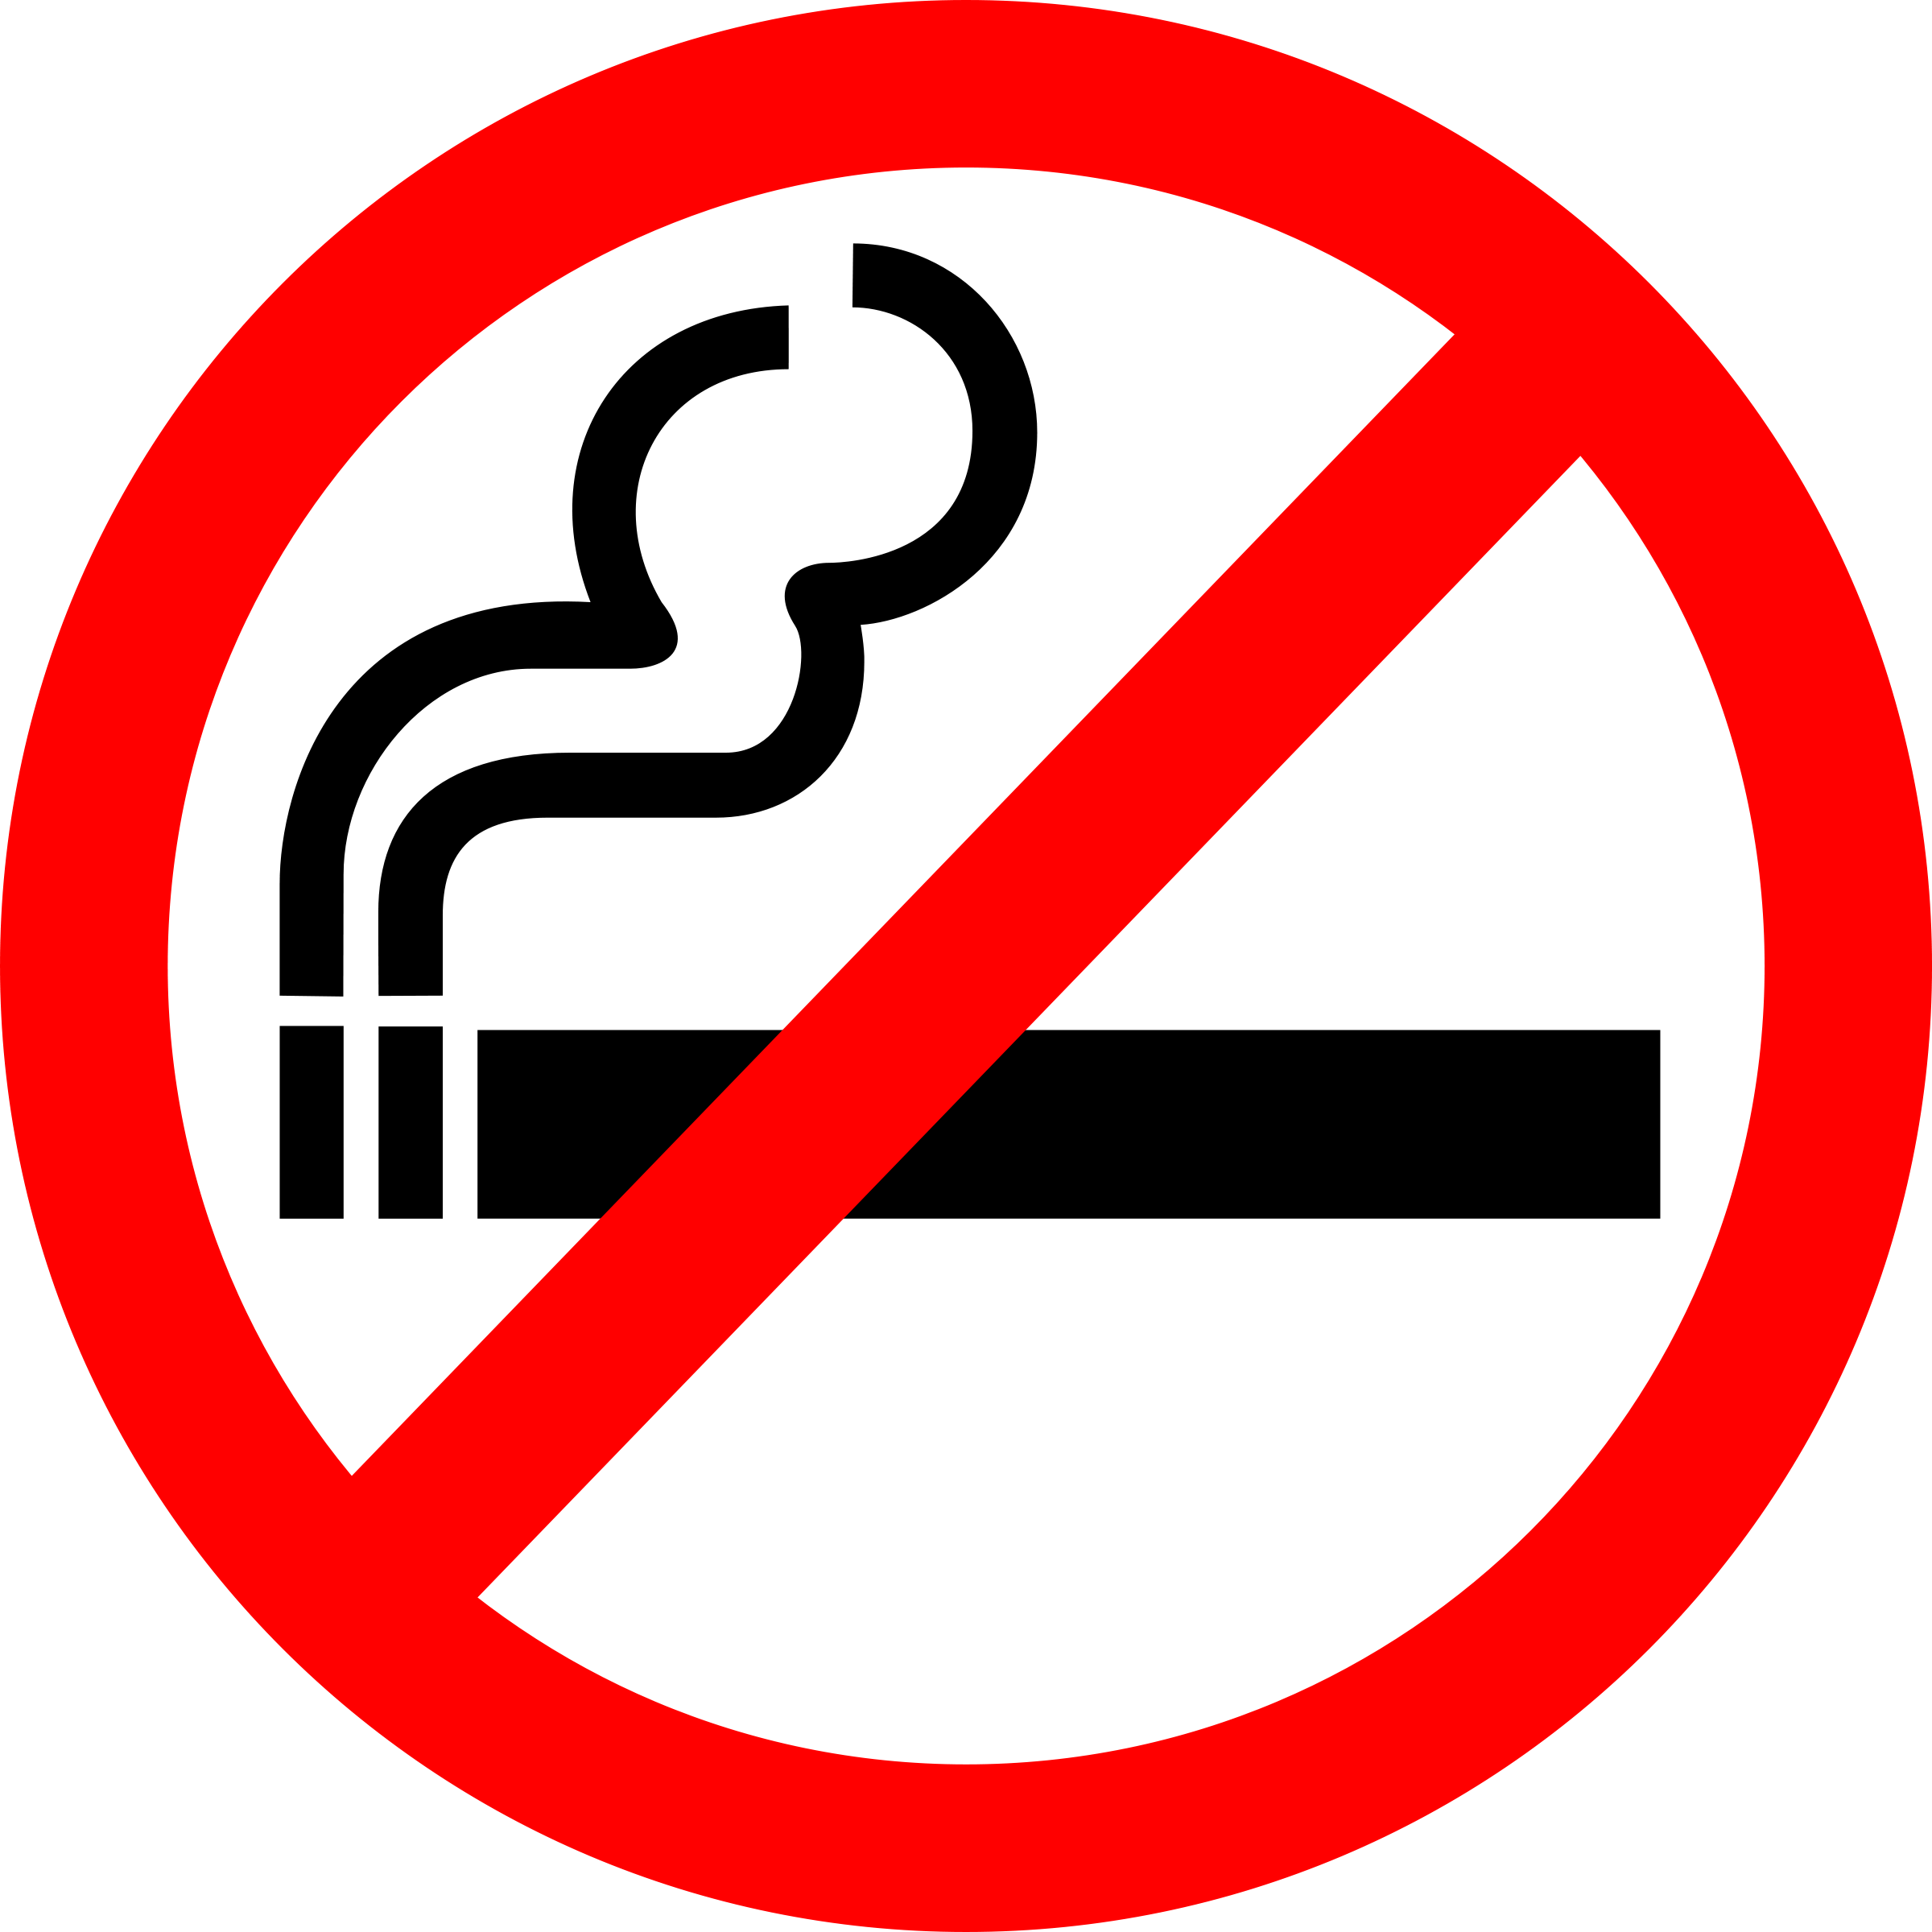 Cigarettes vector asap. Anti smoking program financial